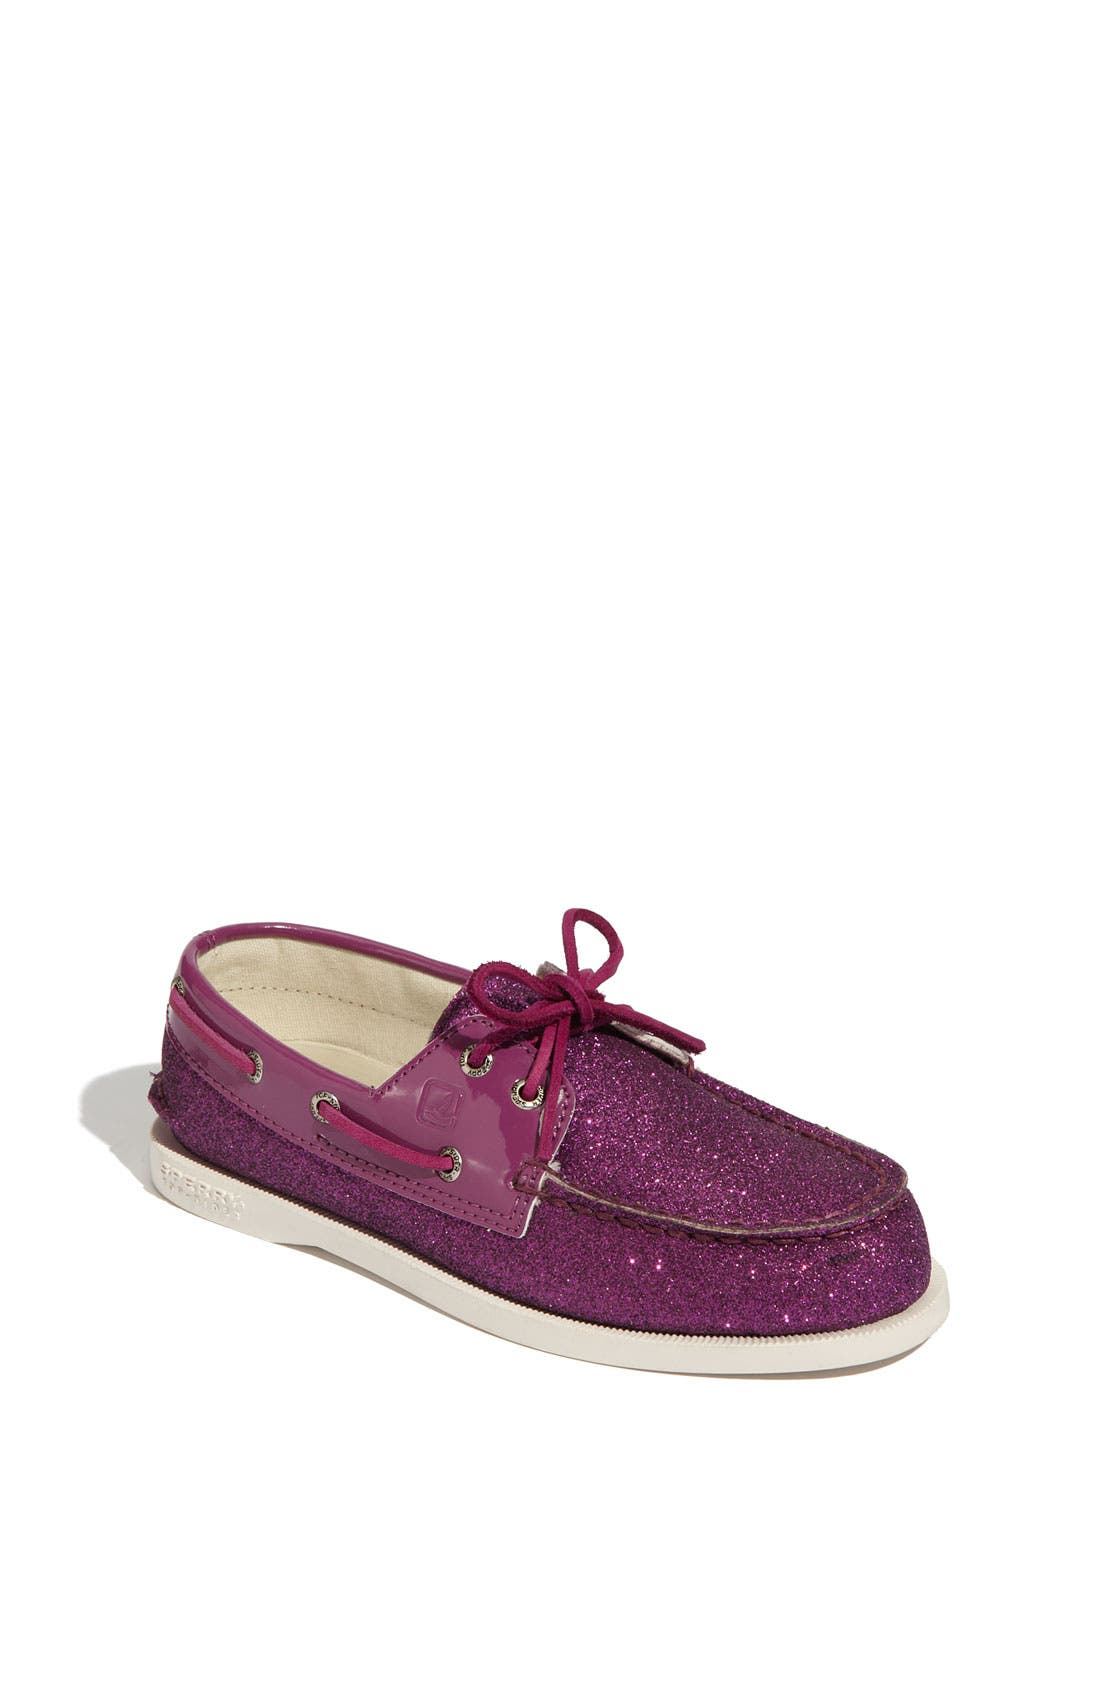 Alternate Image 1 Selected - Sperry Top-Sider® 'Authentic Original' Glitter Boat Shoe (Toddler, Little Kid & Big Kid)